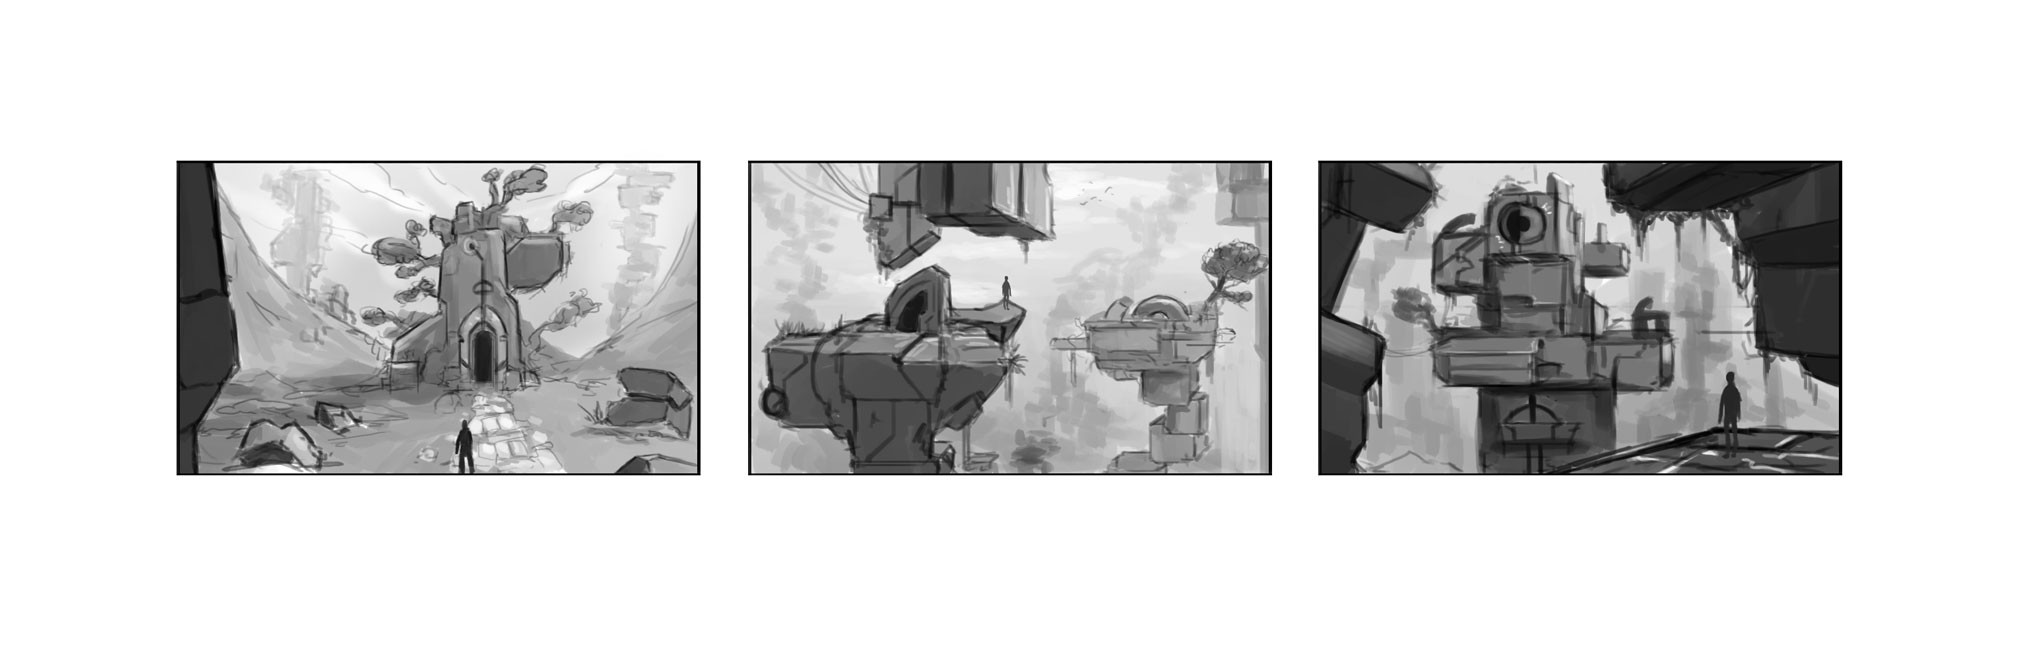 Composition thumbnail sketches